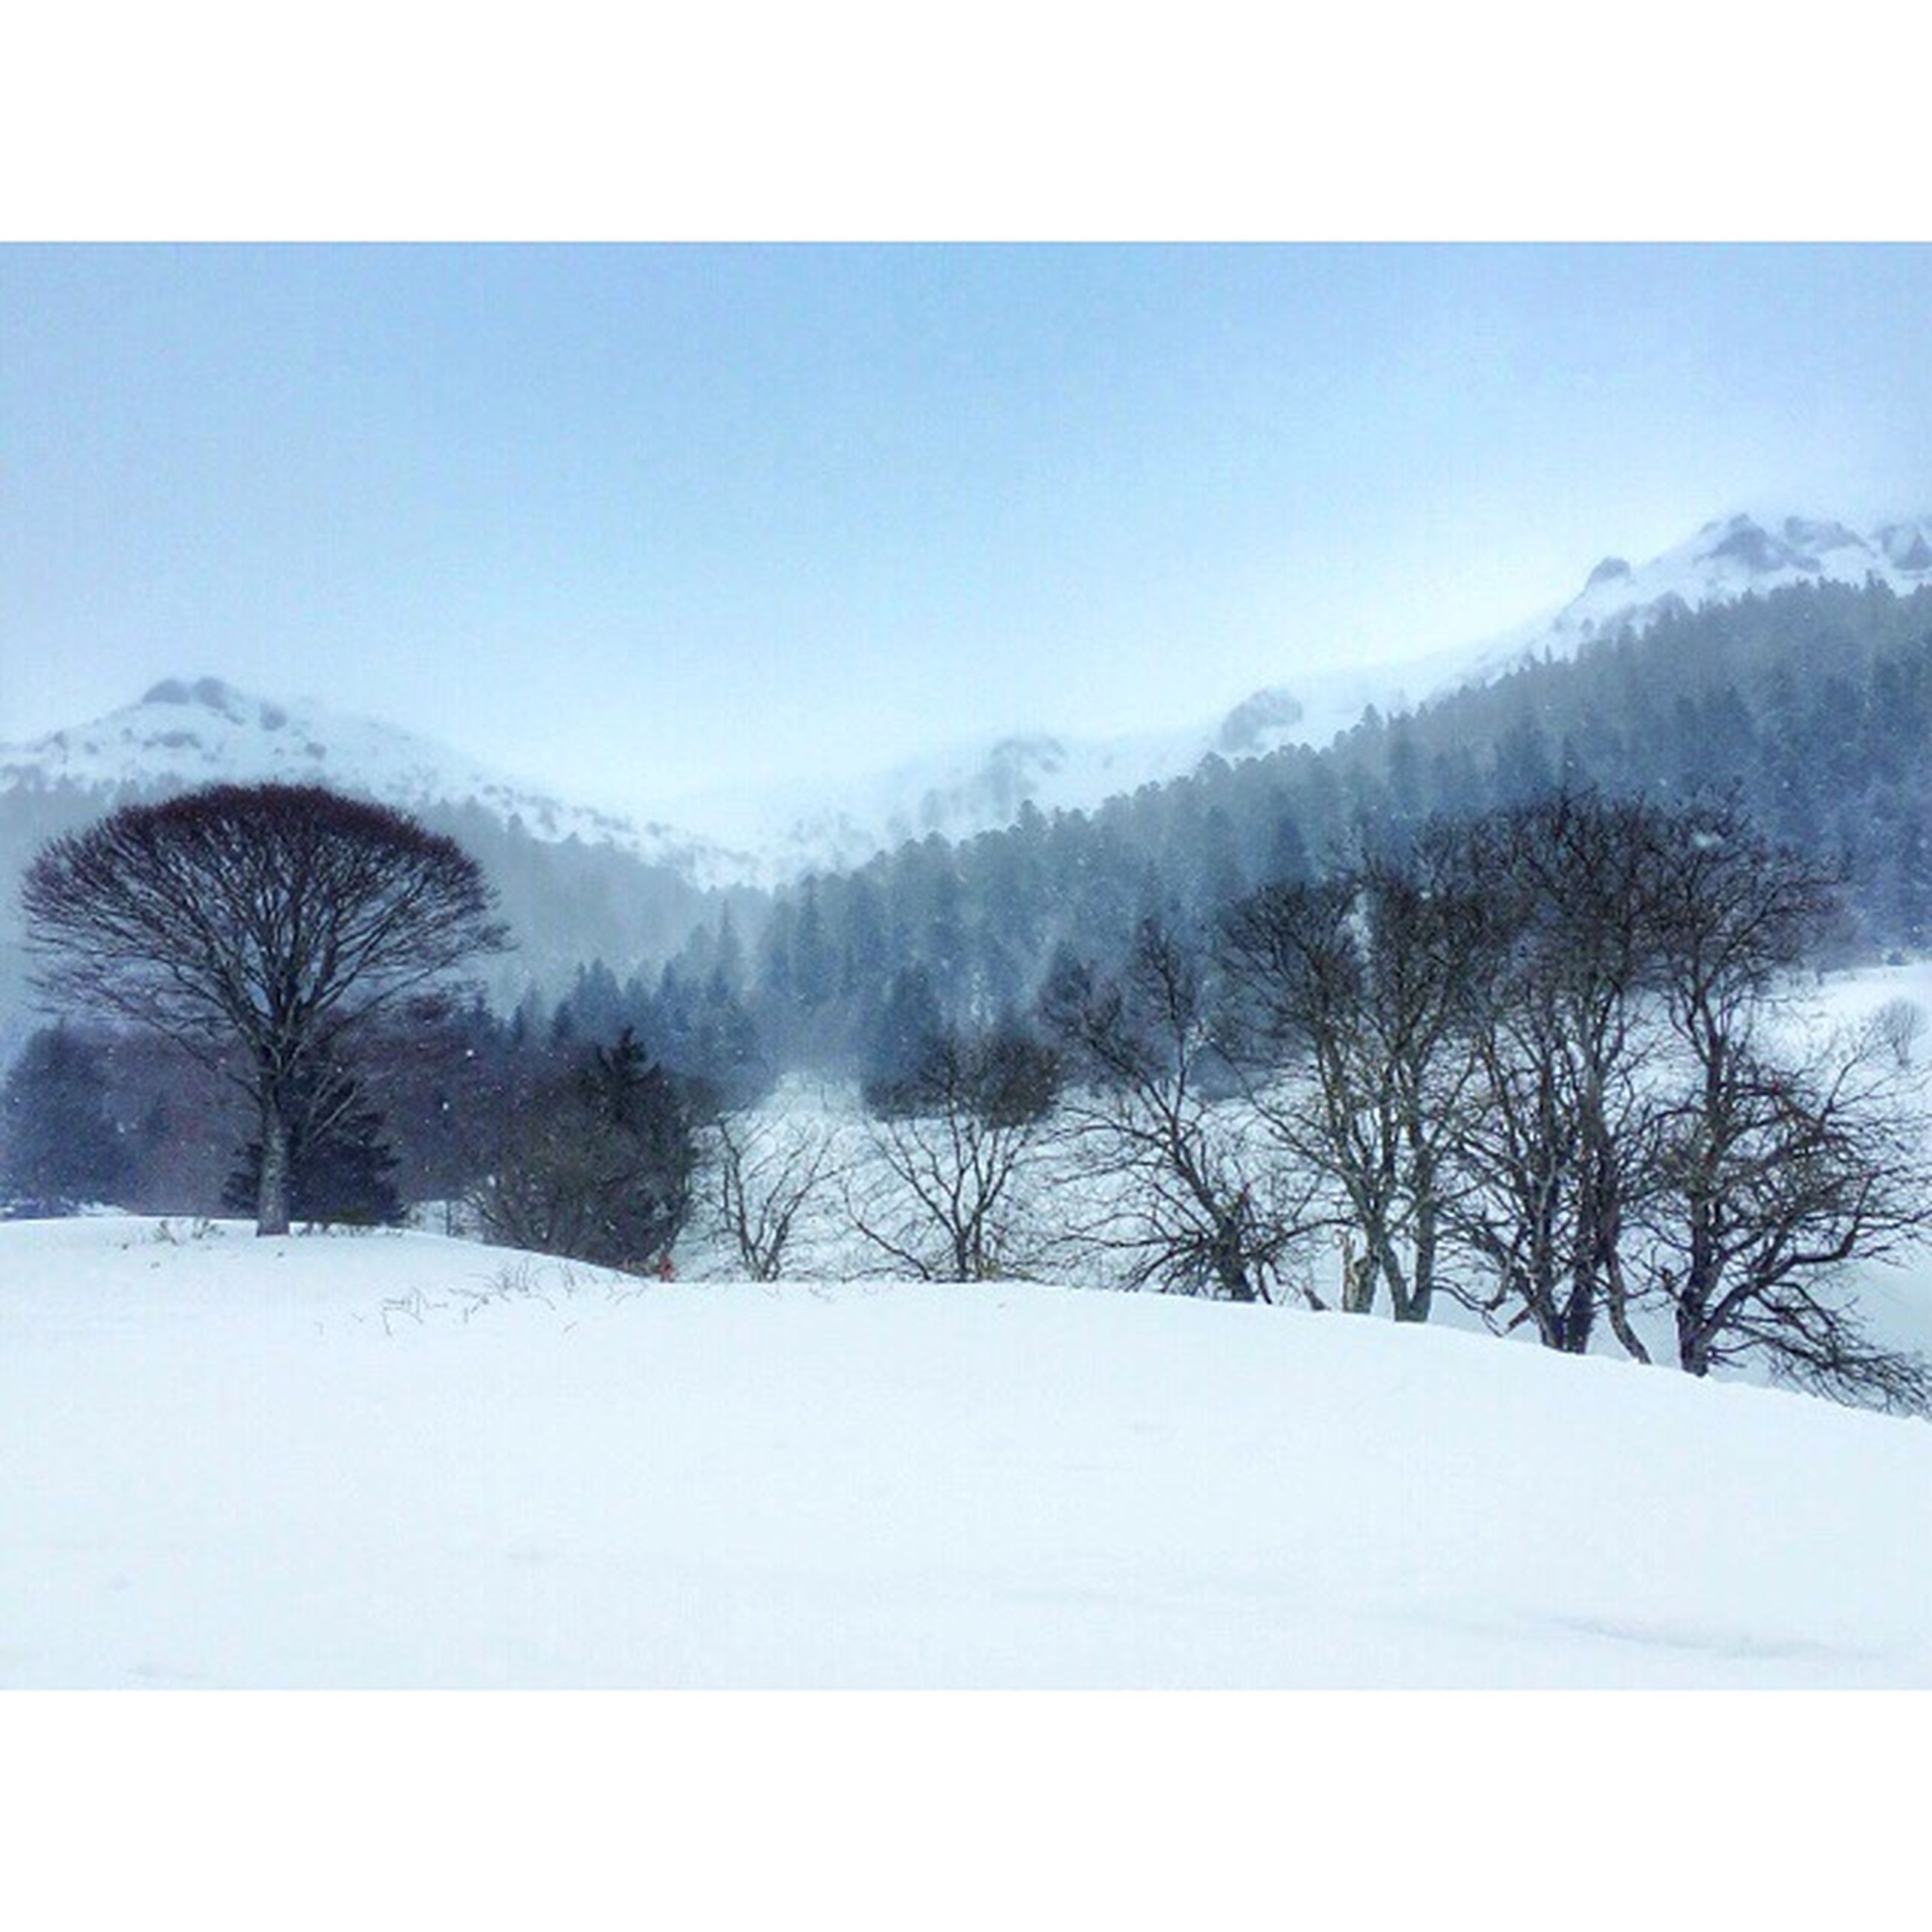 snow, winter, cold temperature, season, weather, tree, tranquil scene, tranquility, covering, landscape, beauty in nature, scenics, bare tree, nature, frozen, white color, field, clear sky, covered, sky